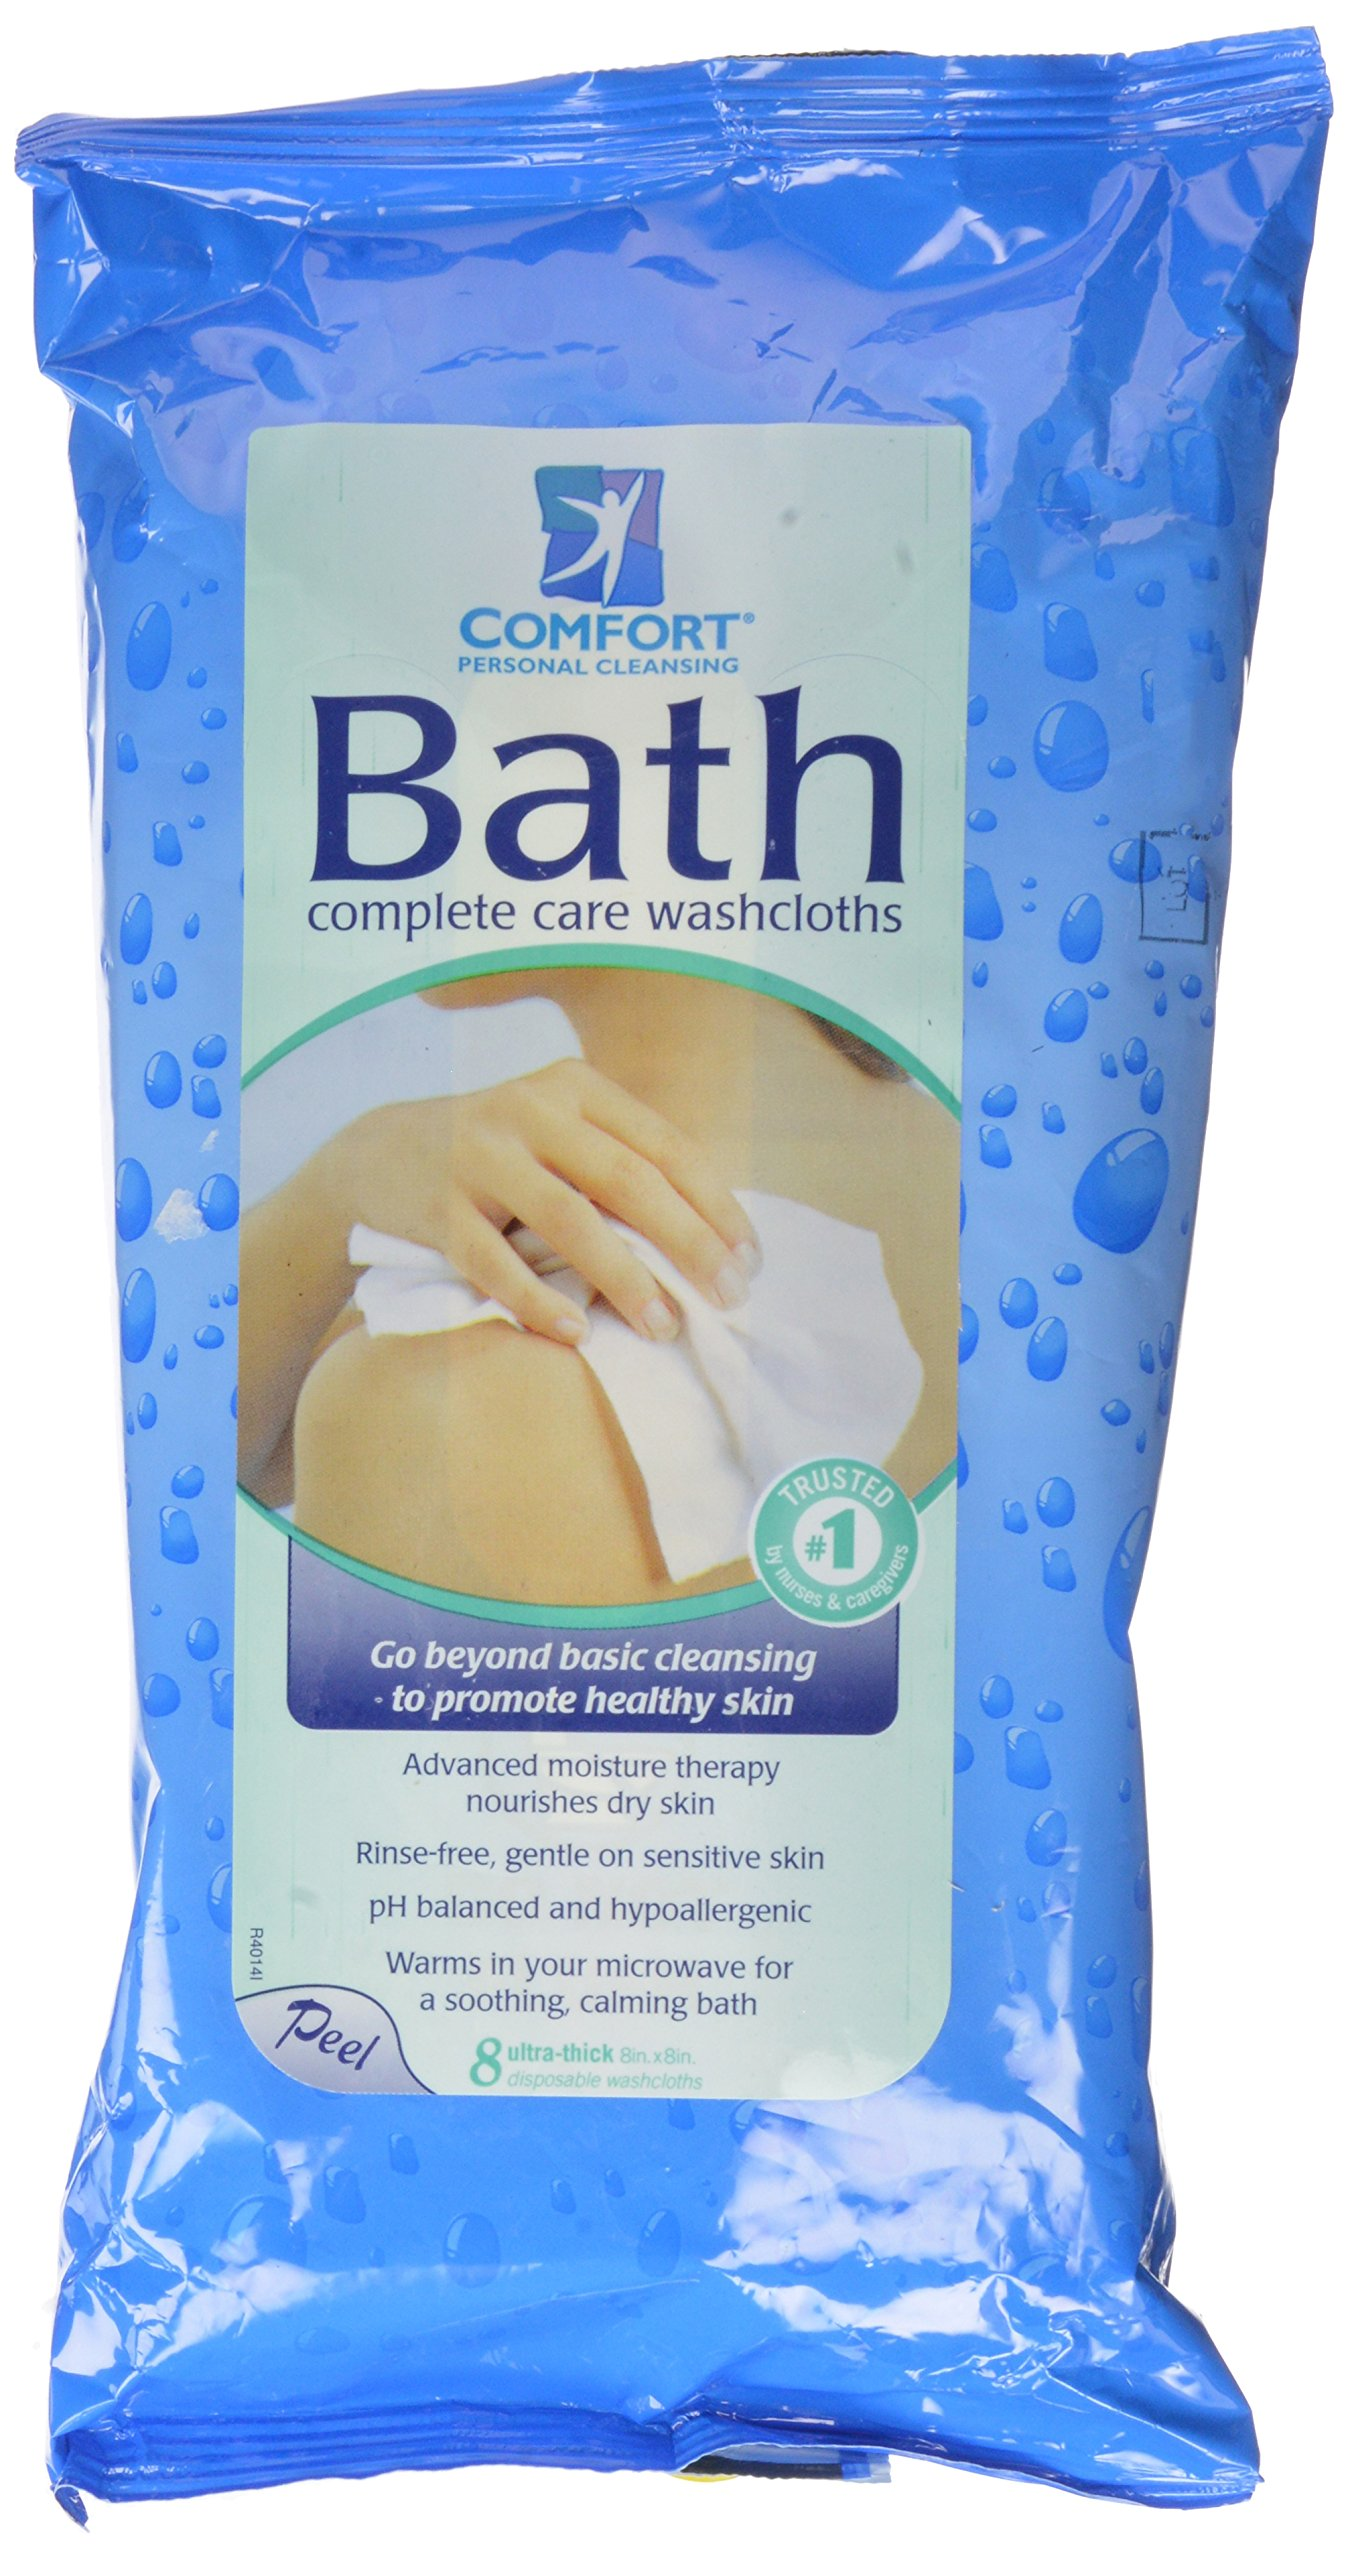 Comfort Bath! Personal Cleansing, Ultra-Thick Disposable Washcloths, 8 ea pack of 2 by Comfort Bath